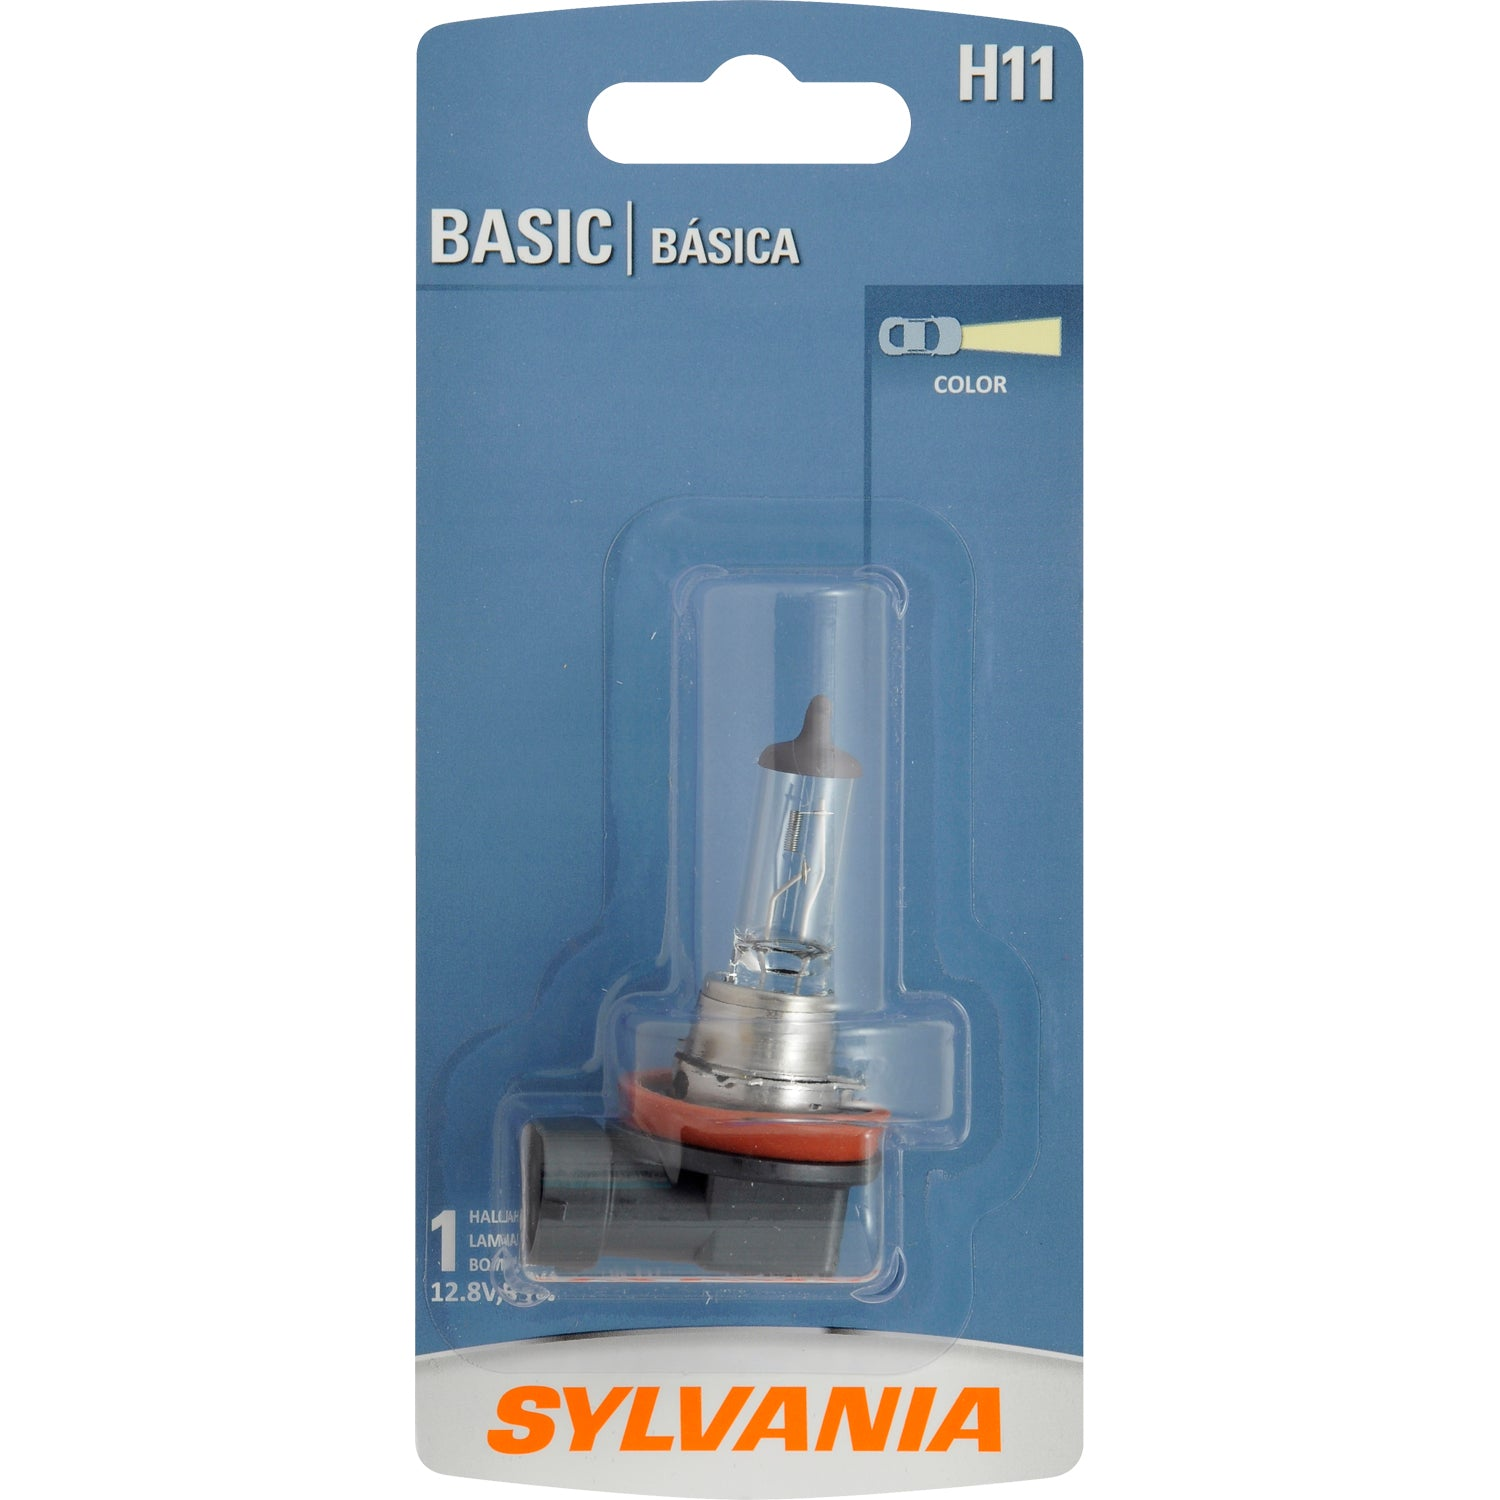 SYLVANIA H11 Basic Halogen Headlight Automotive Bulb